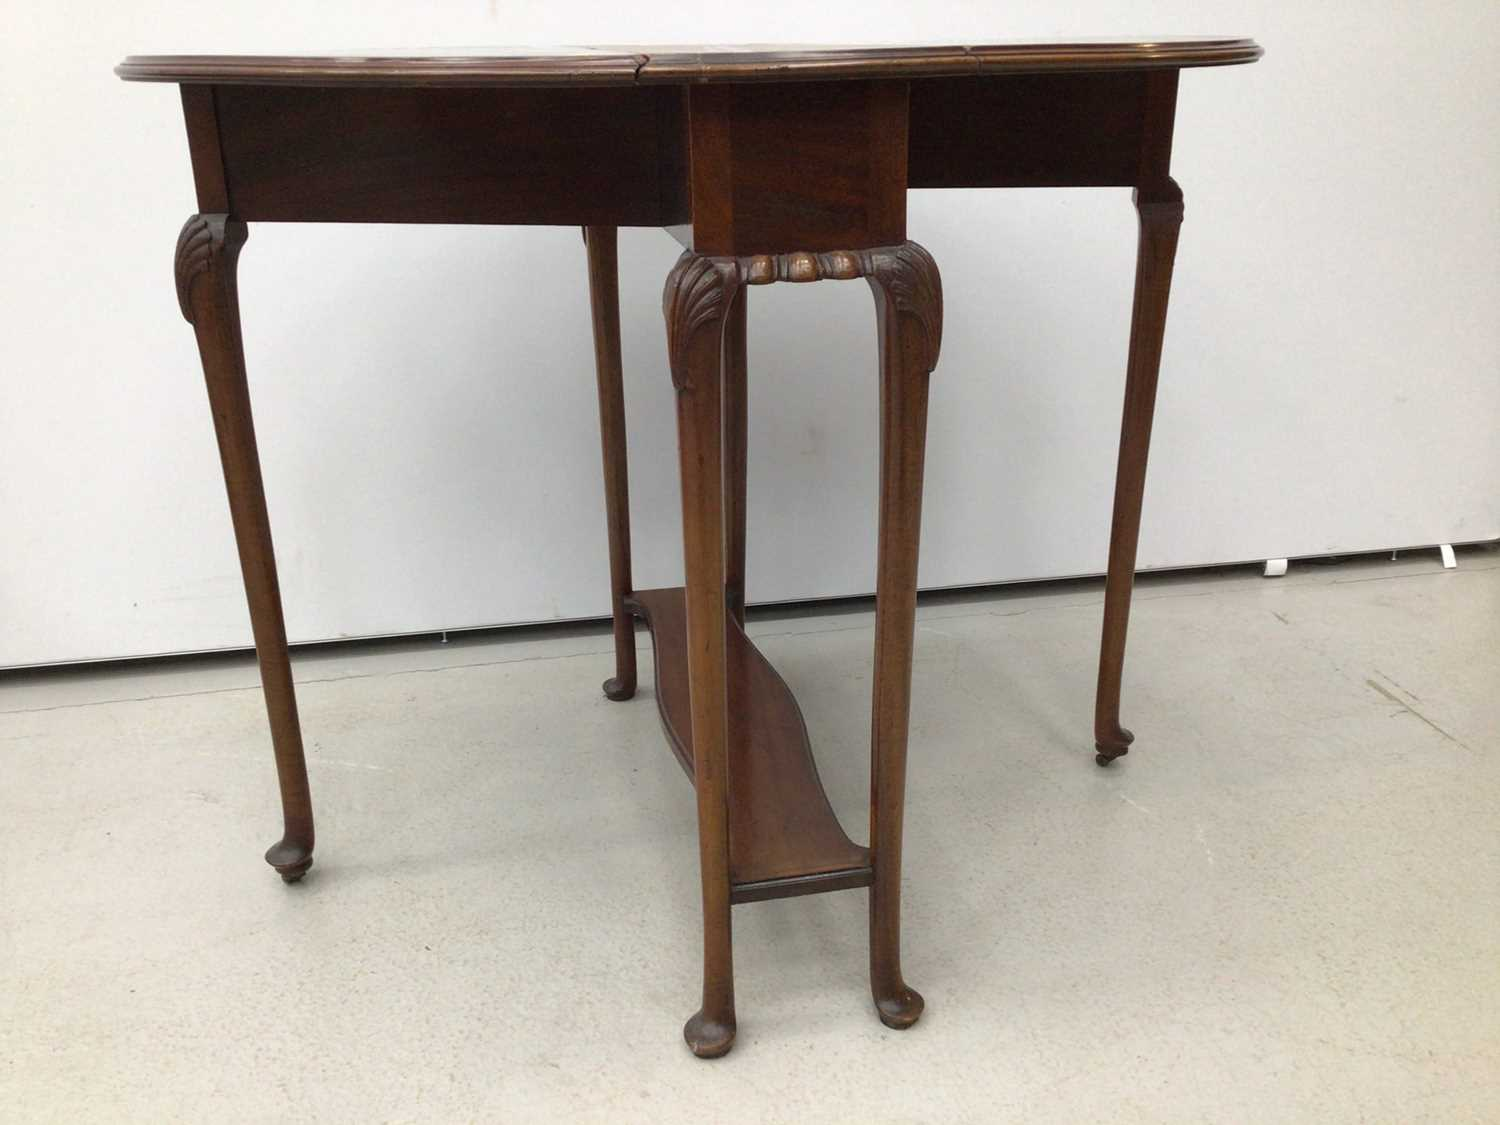 Mahogany oval Sutherland table on turned legs, 61cm opening to 83cm x 68cm high - Image 3 of 5